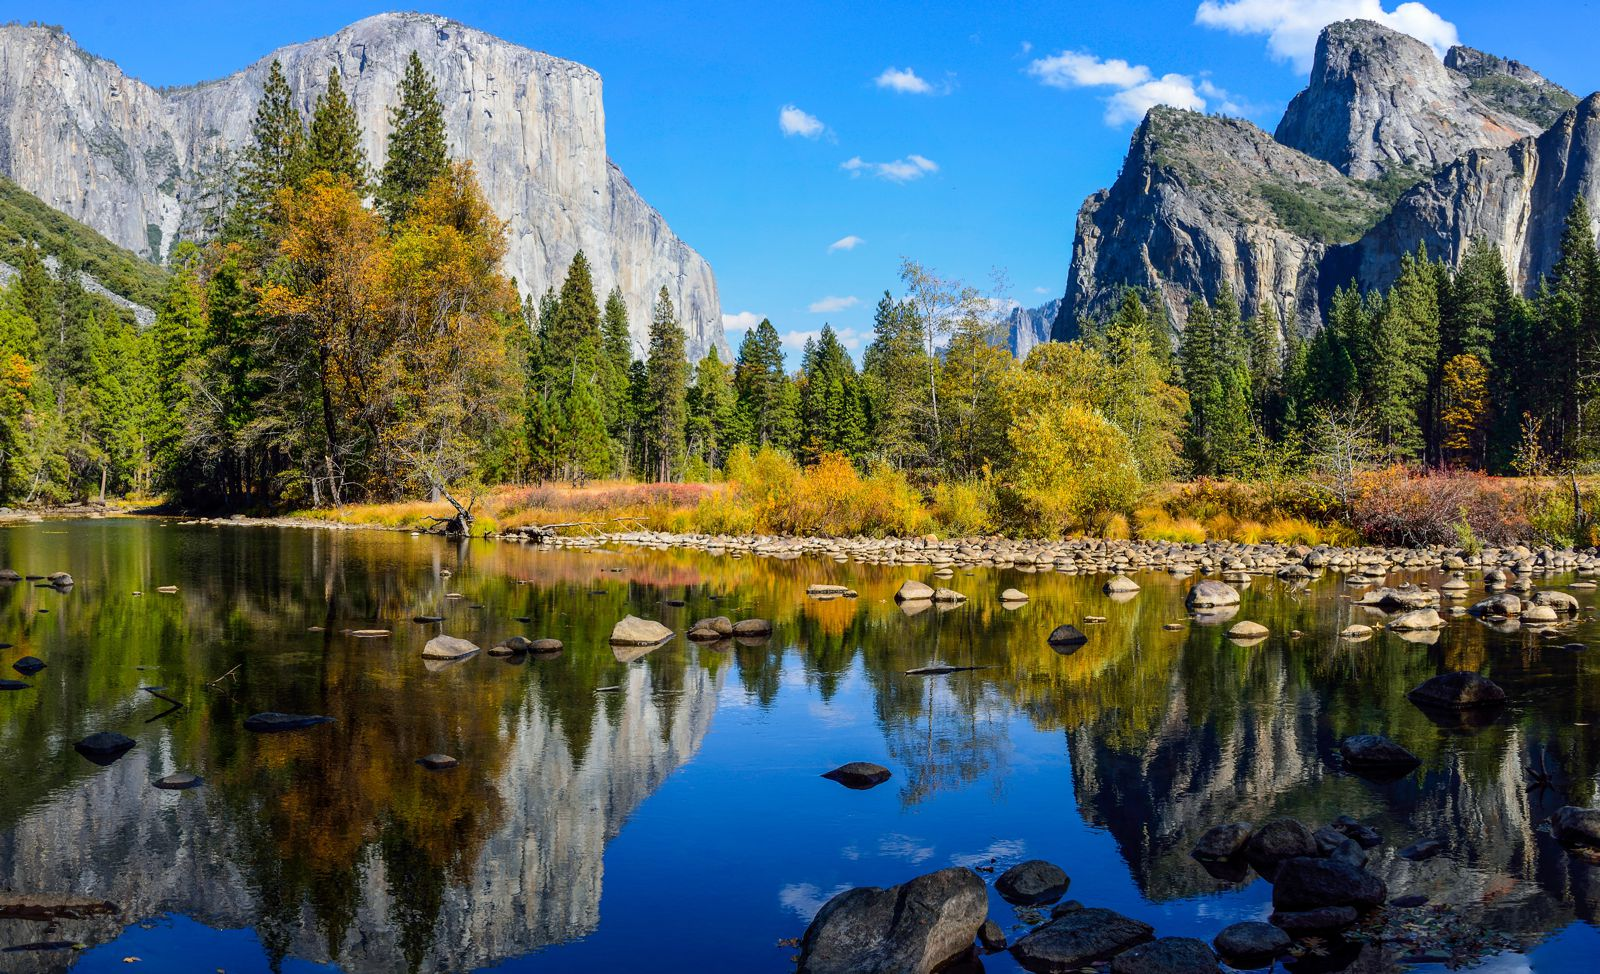 The Ultimate California Road Trip: 19 Places To Stop, Eat, See and Explore! (4)